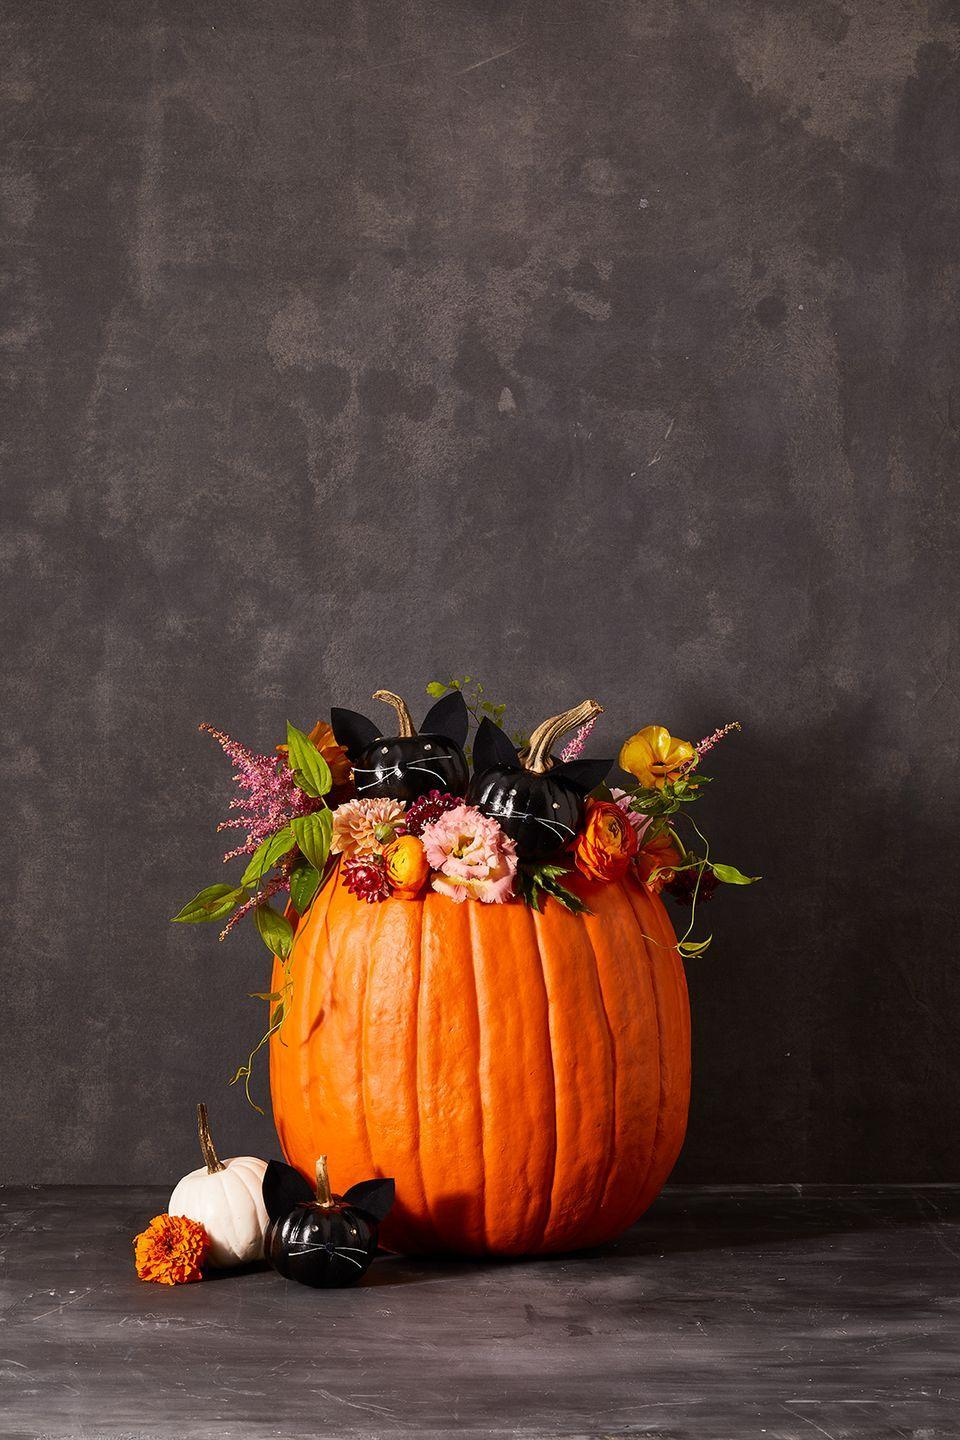 """<p>If you want to do less carving but still have a show-stopping pumpkin, then this Kitten pumpkin is pur-fect! </p><p><strong>Mini Kitten Pumpkins:</strong> Take your mini pumpkins and spray paint them black with two coats of paint. Add rhinestones for the eyes, thread for the whiskers and pom pom noses with a hot glue gun. For the ears, you can cut out triangles from velour paper, attach toothpicks to them with a hot glue gun, and stick the ears into the tops of the pumpkin.</p><p><strong>Main Pumpkin:</strong> Begin by carving a circle on the top of your pumpkin and taking out all the seeds. Fill the pumpkin with crumbled newspaper and nestle the kitten pumpkins on top. Take water tubes and fill them with water for the fresh flowers and place them inside the pumpkin.</p><p><a class=""""link rapid-noclick-resp"""" href=""""https://www.jamaligarden.com/floral-water-tube.html"""" rel=""""nofollow noopener"""" target=""""_blank"""" data-ylk=""""slk:SHOP WATER TUBES"""">SHOP WATER TUBES</a></p>"""